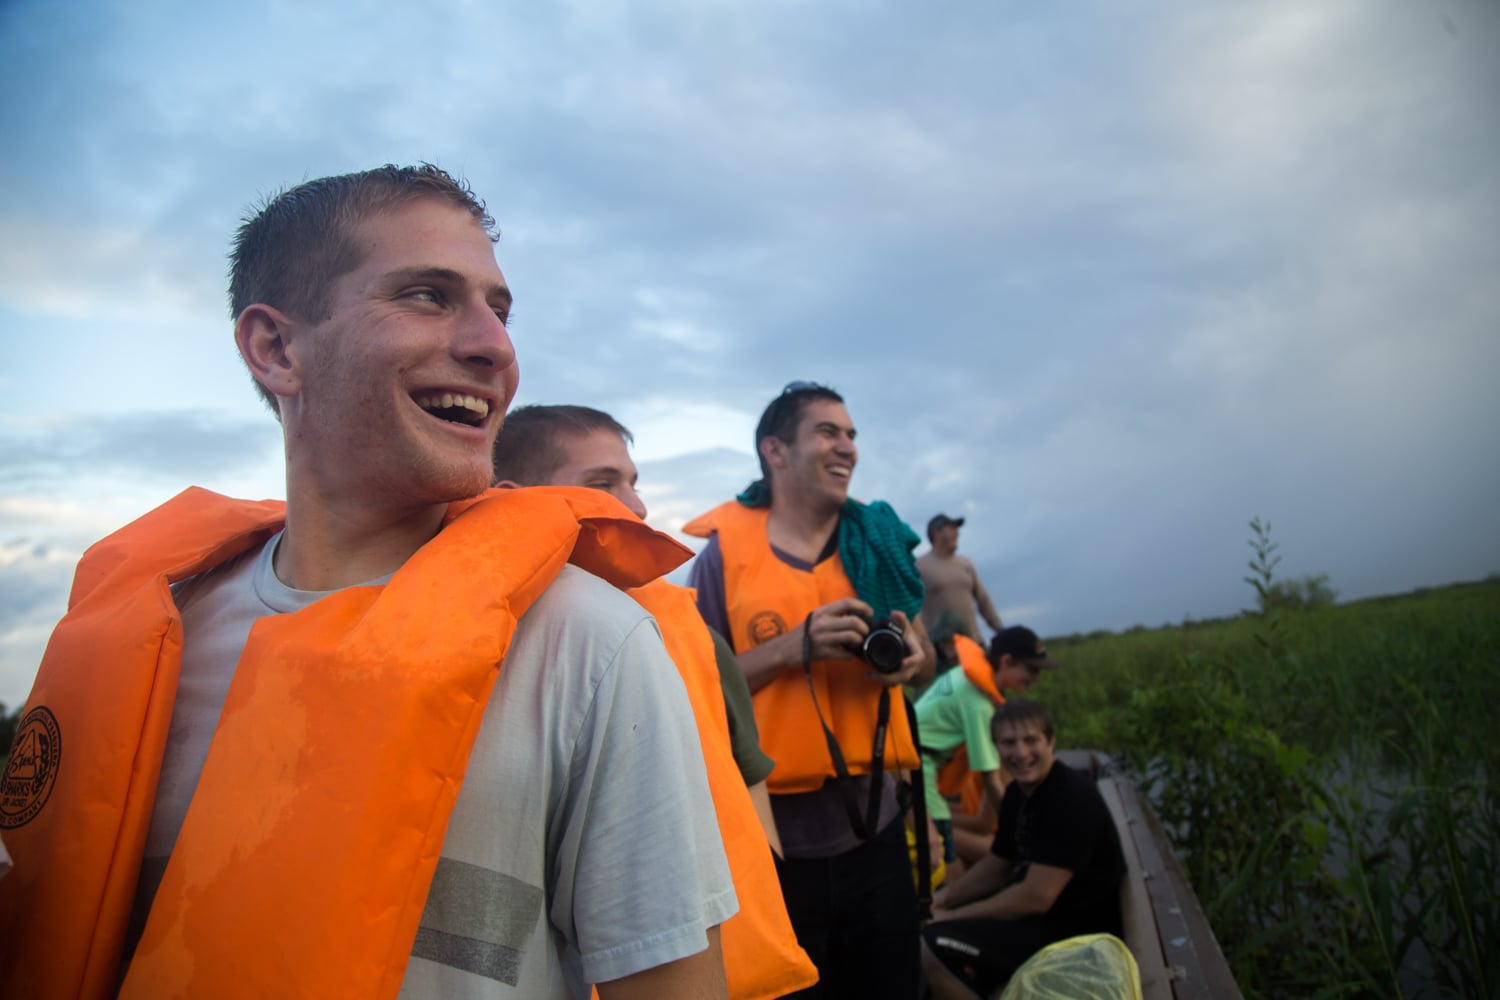 Jesse Axelowitz, Ryan Axelowitz, Jason Stoll, Corey Axelowitz, Nico Frost, and Juan Carlos look over as the people on the second fishing boat catch piranhas in the Amazon River